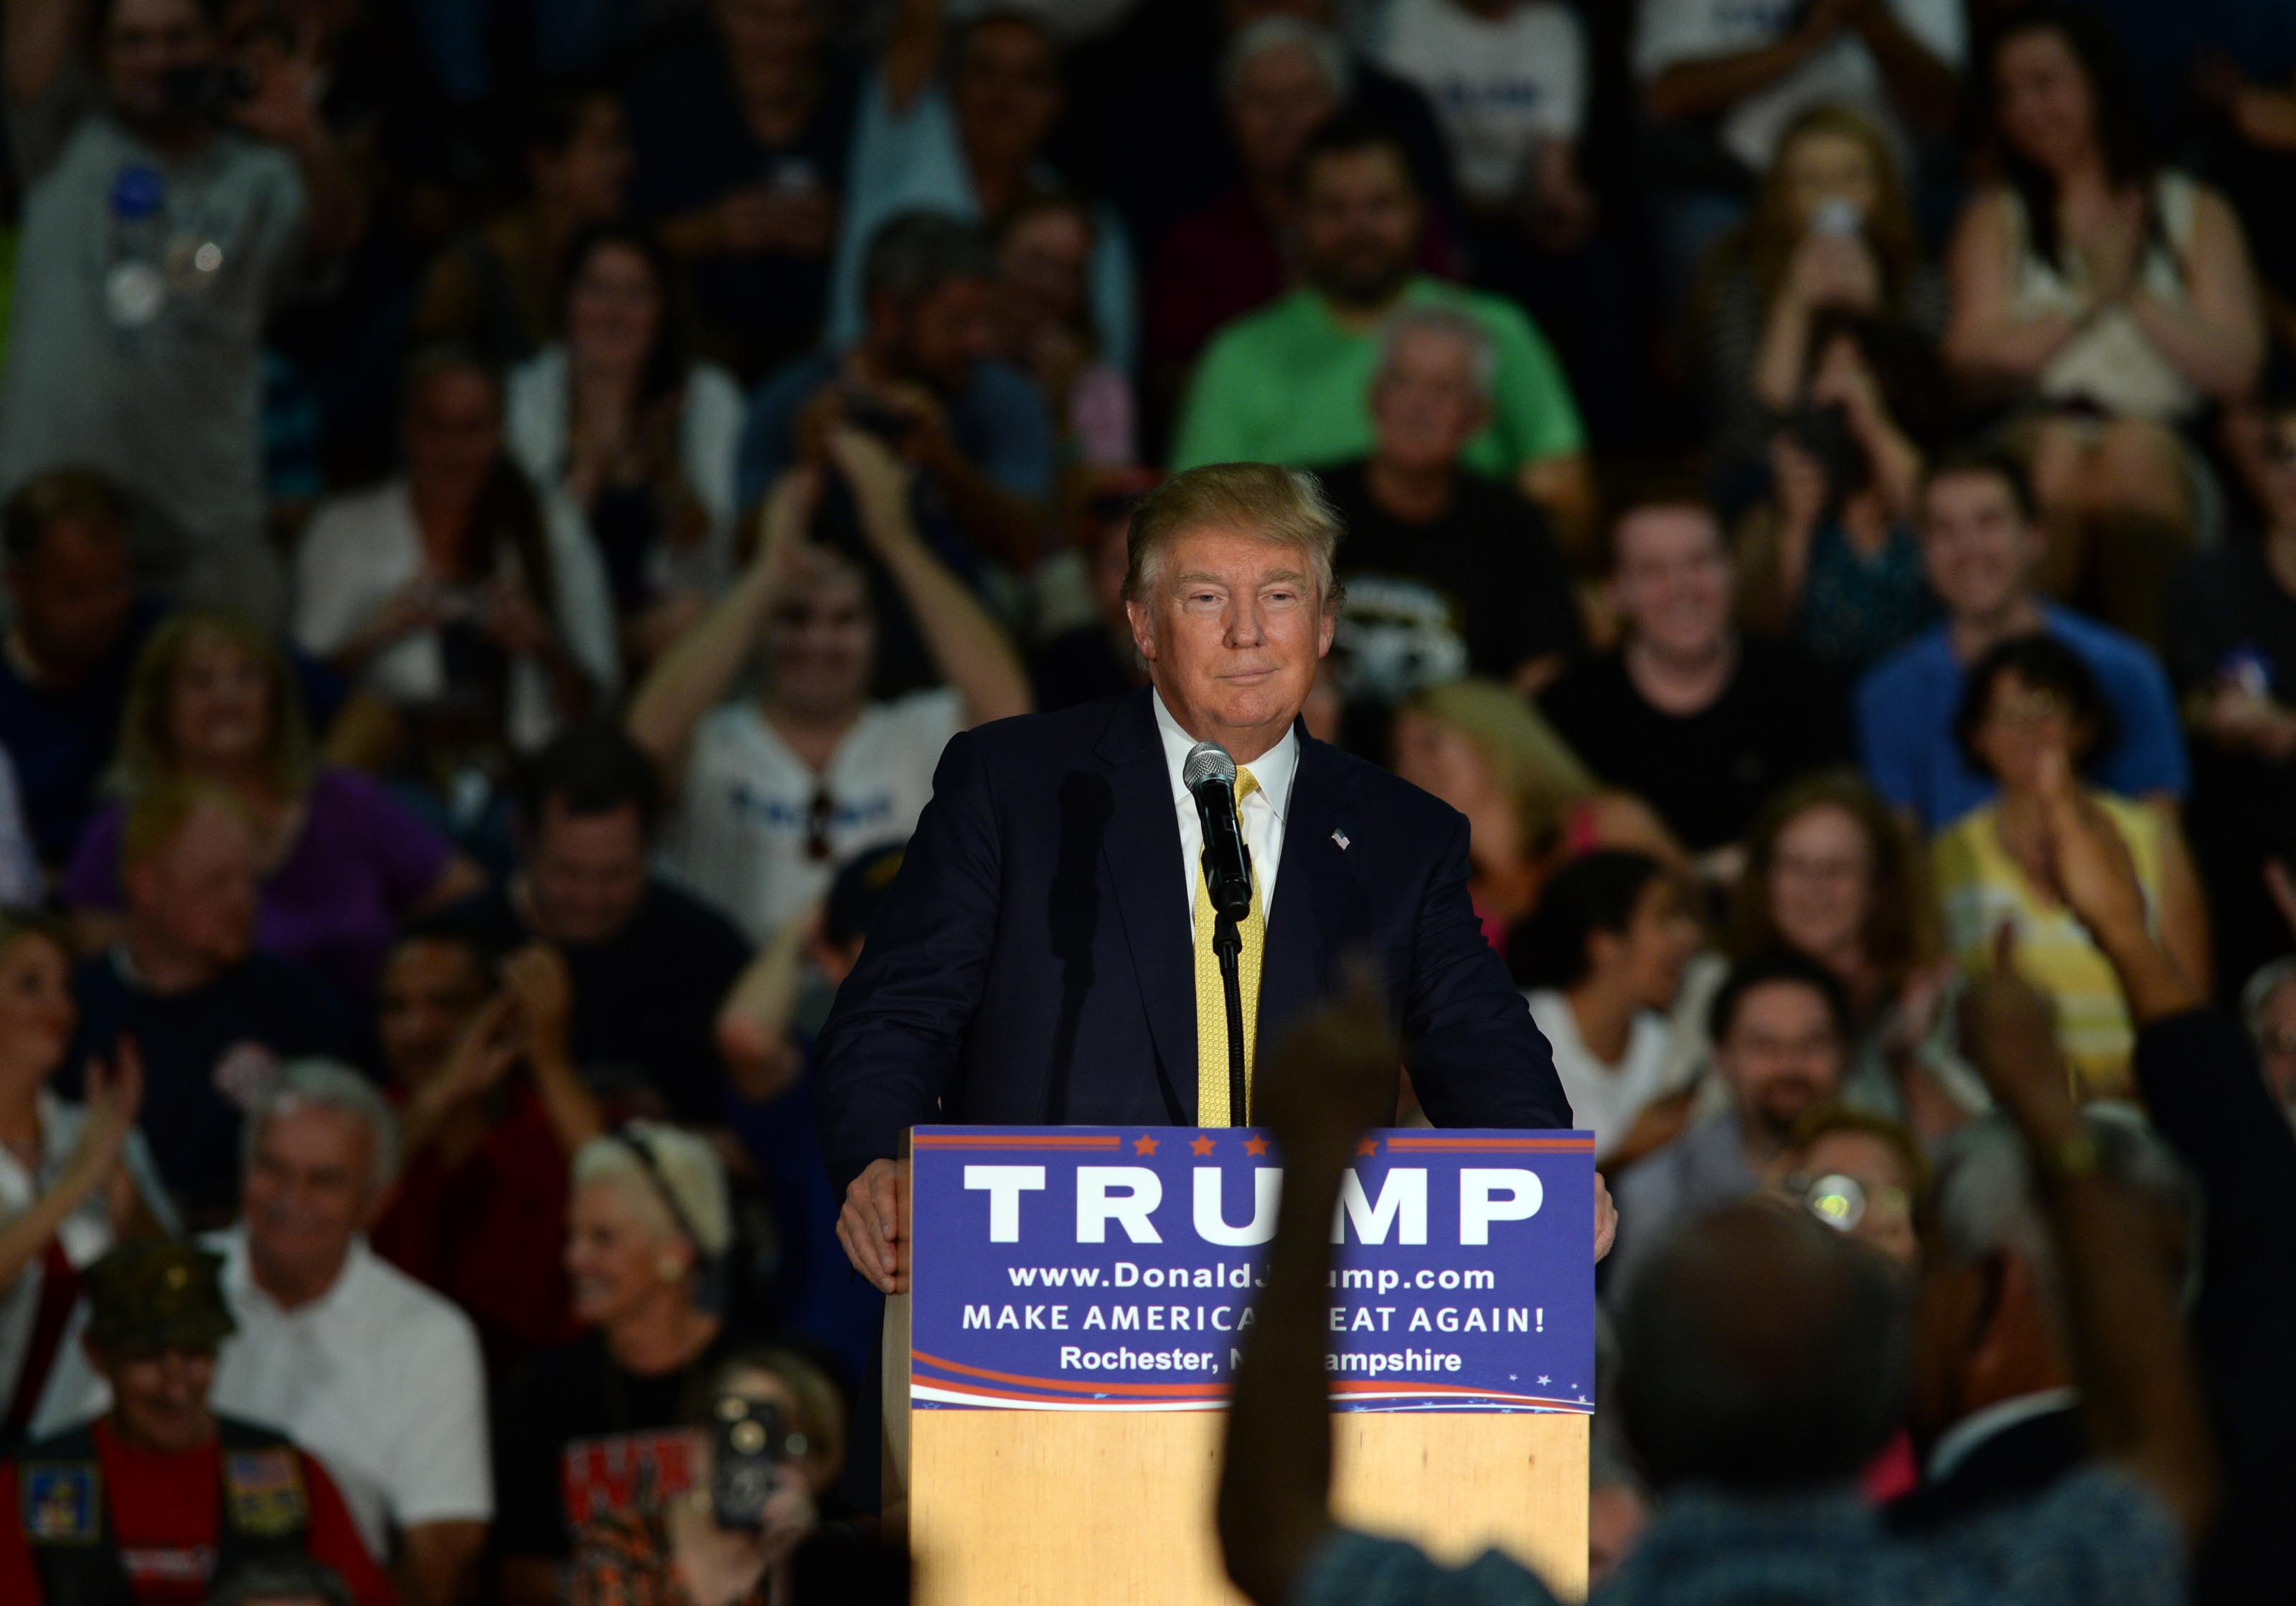 ROCHESTER, NH - SEPTEMBER 17: Republican Presidential candidate Donald Trump speaks during a town hall event at Rochester Recreational Arena September, 2015 in Rochester, New Hampshire. Trump spent the day campaigning in New Hampshire following the second Republican presidential debate. (Photo by Darren McCollester/Getty Images) *** Local Caption *** Donald Trump